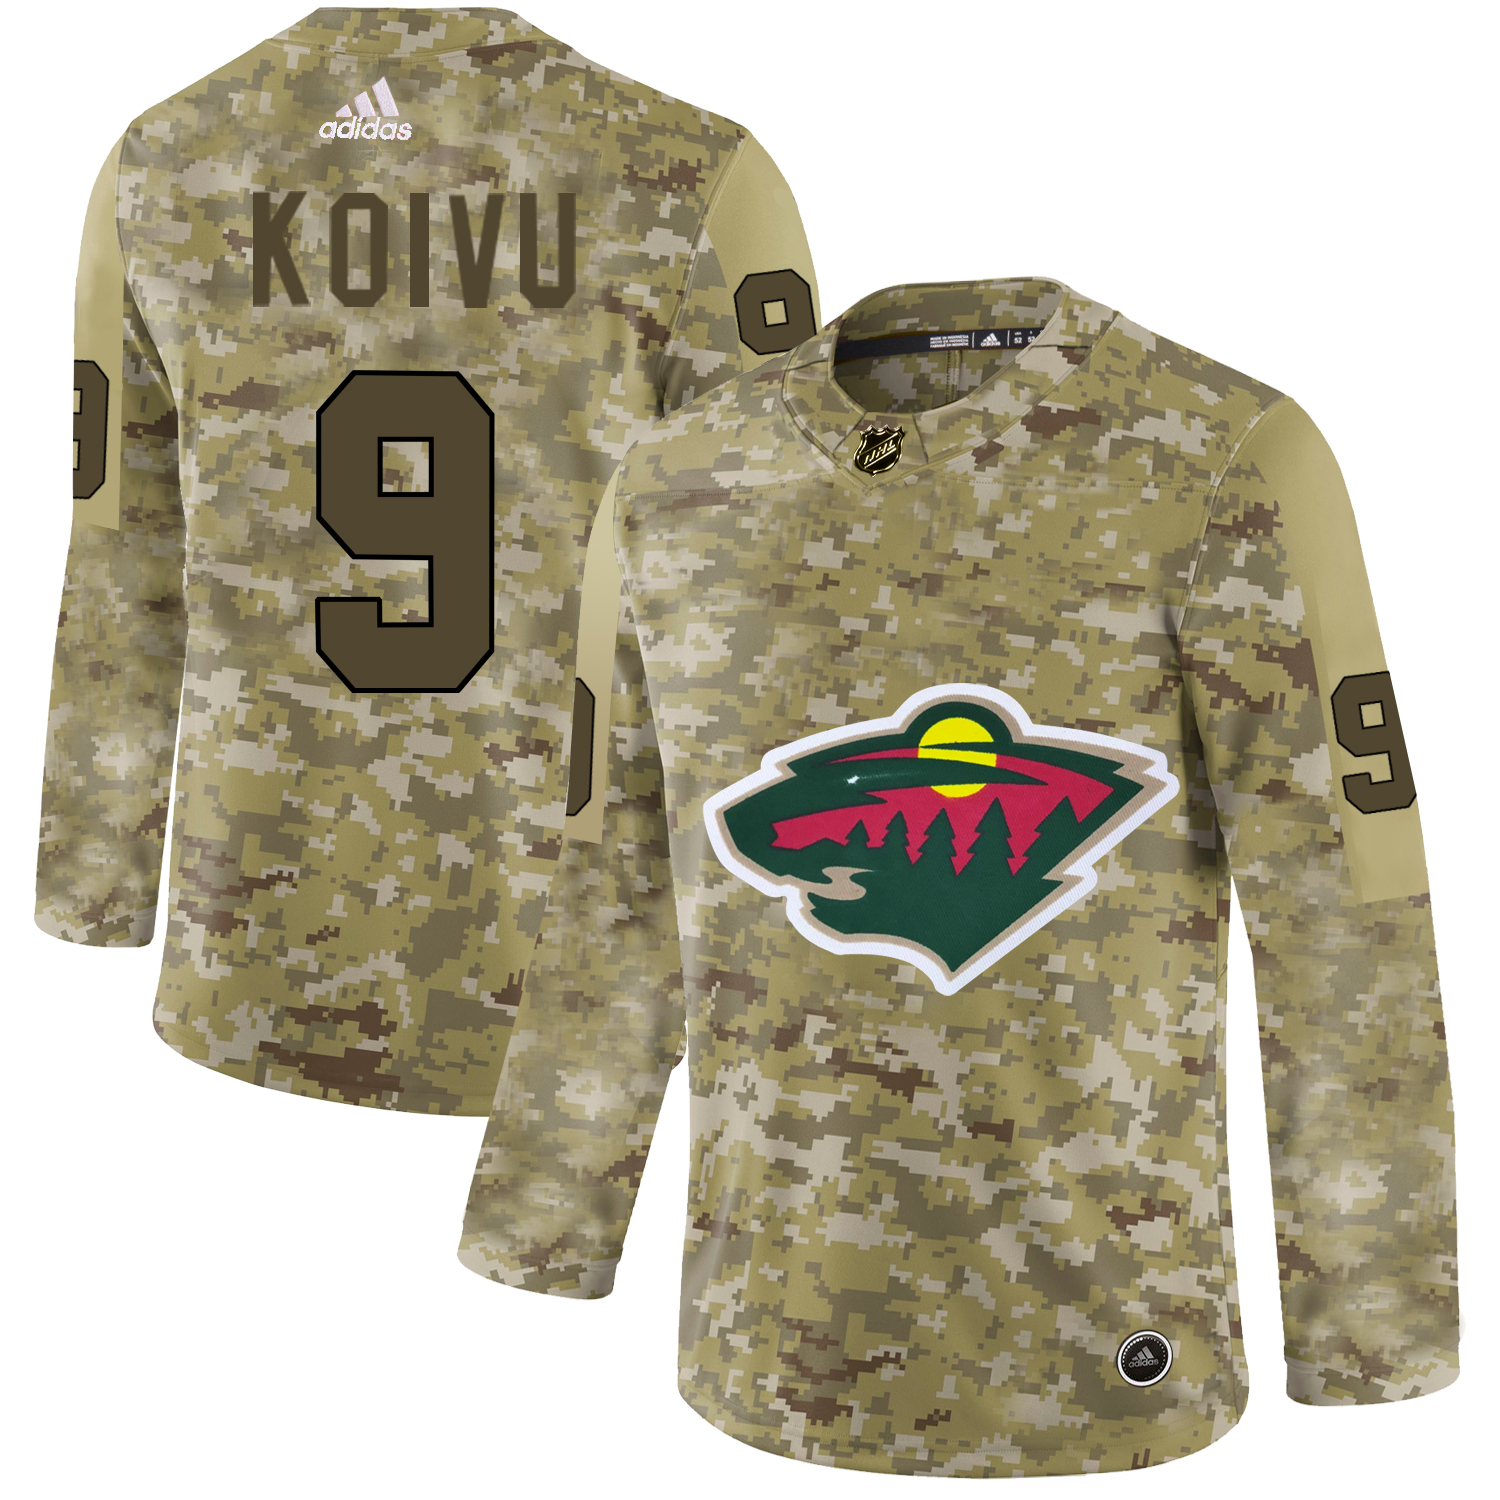 Adidas Wild #9 Mikko Koivu Camo Authentic Stitched NHL Jersey